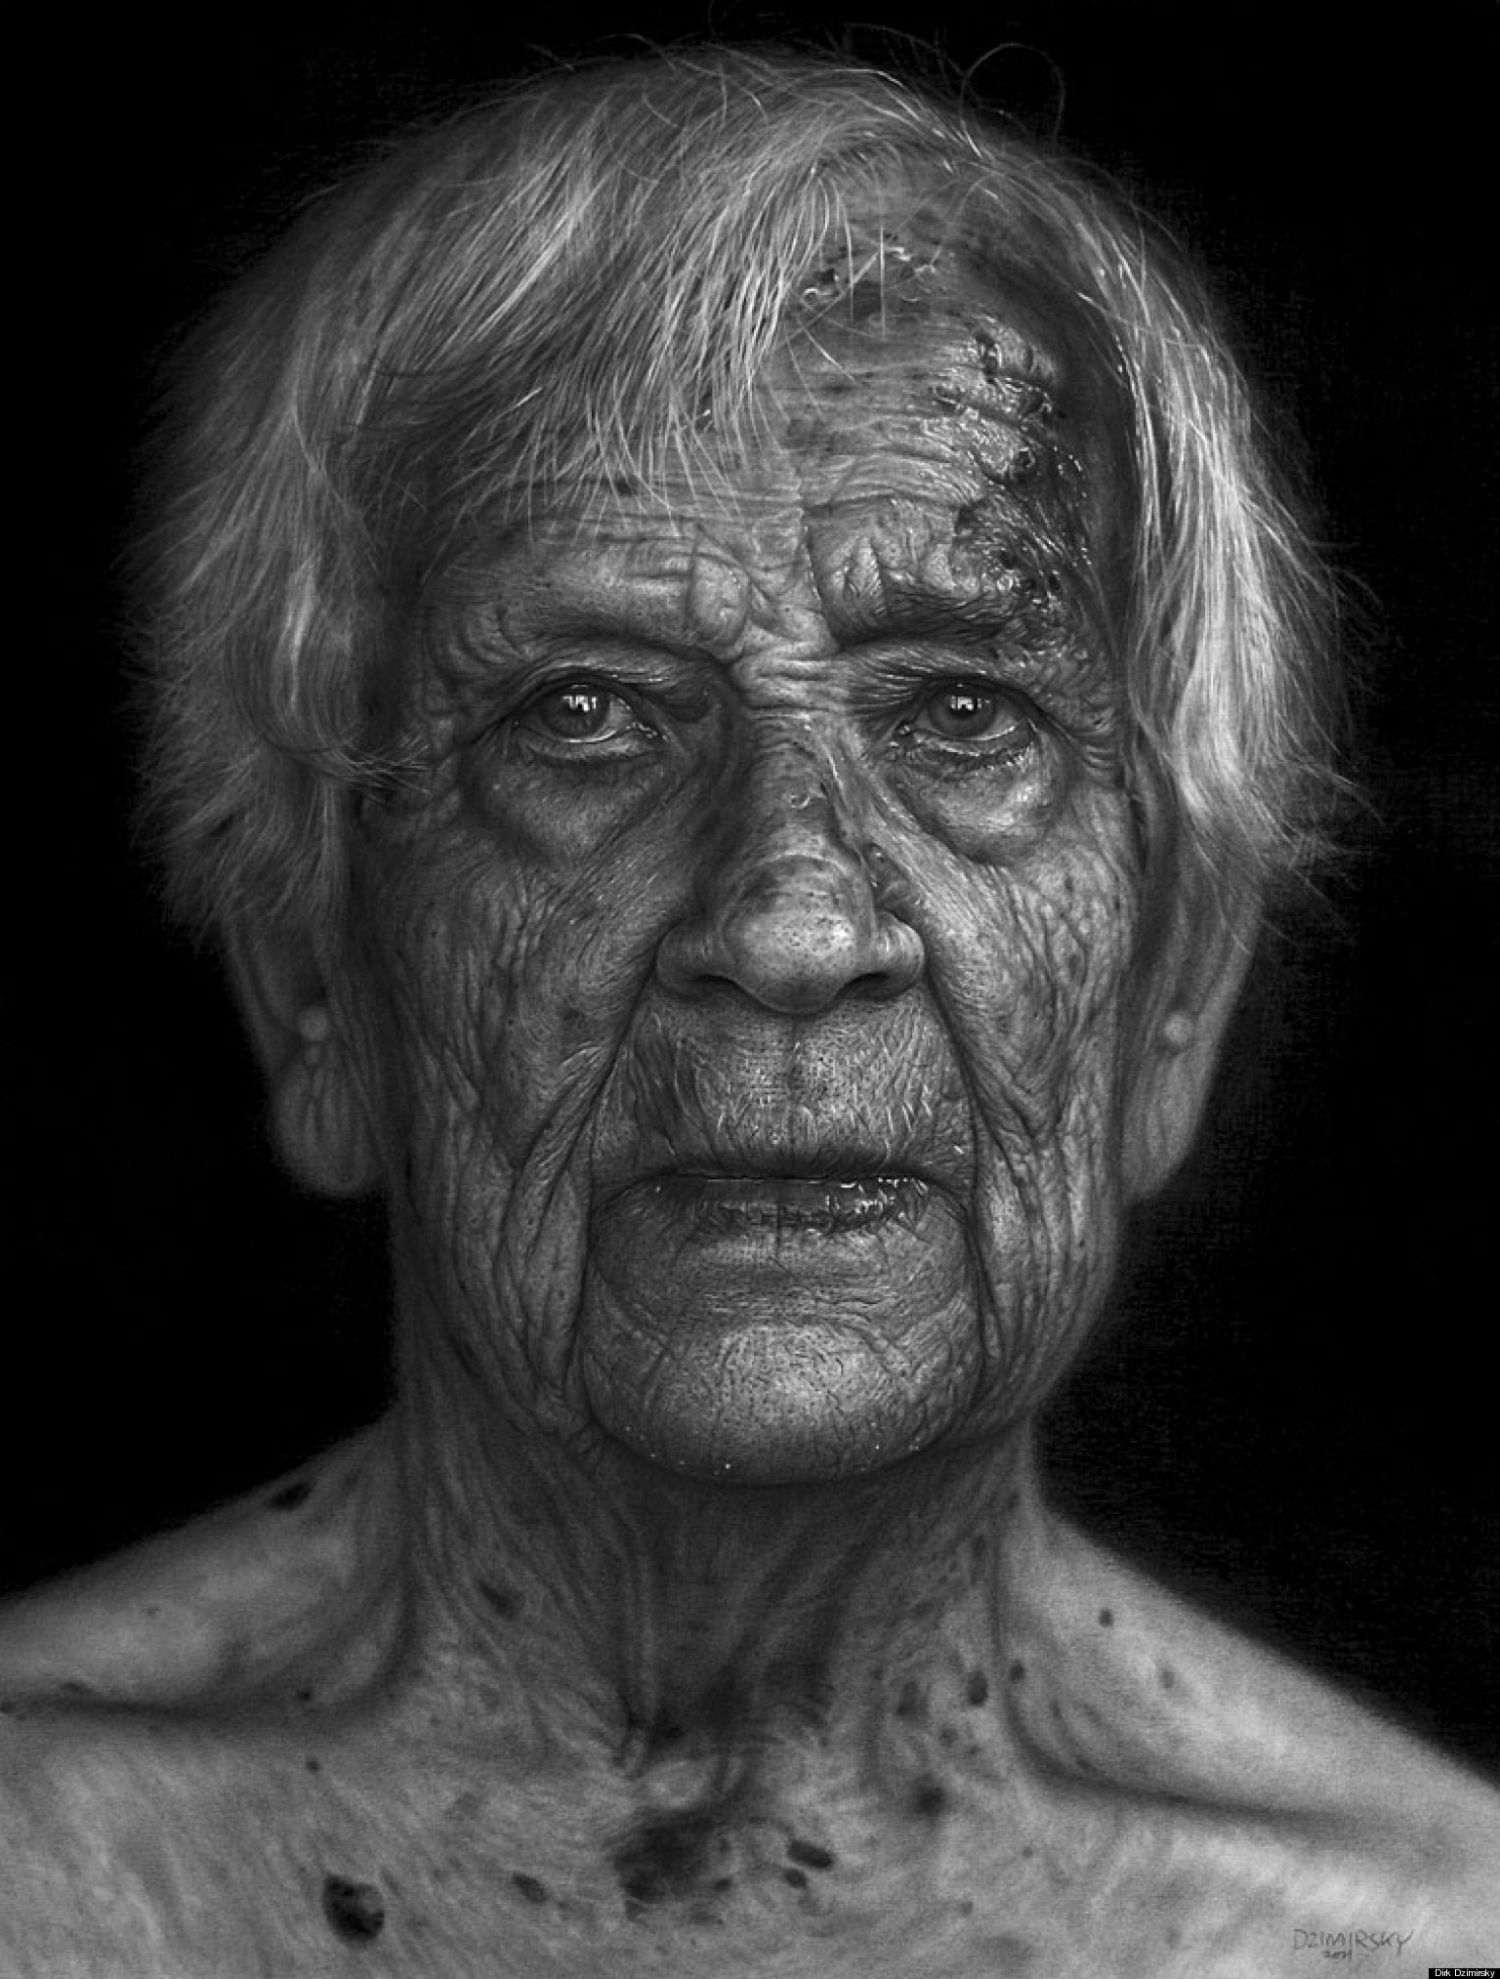 dirk dzimity hyperrelaism pencil black and white